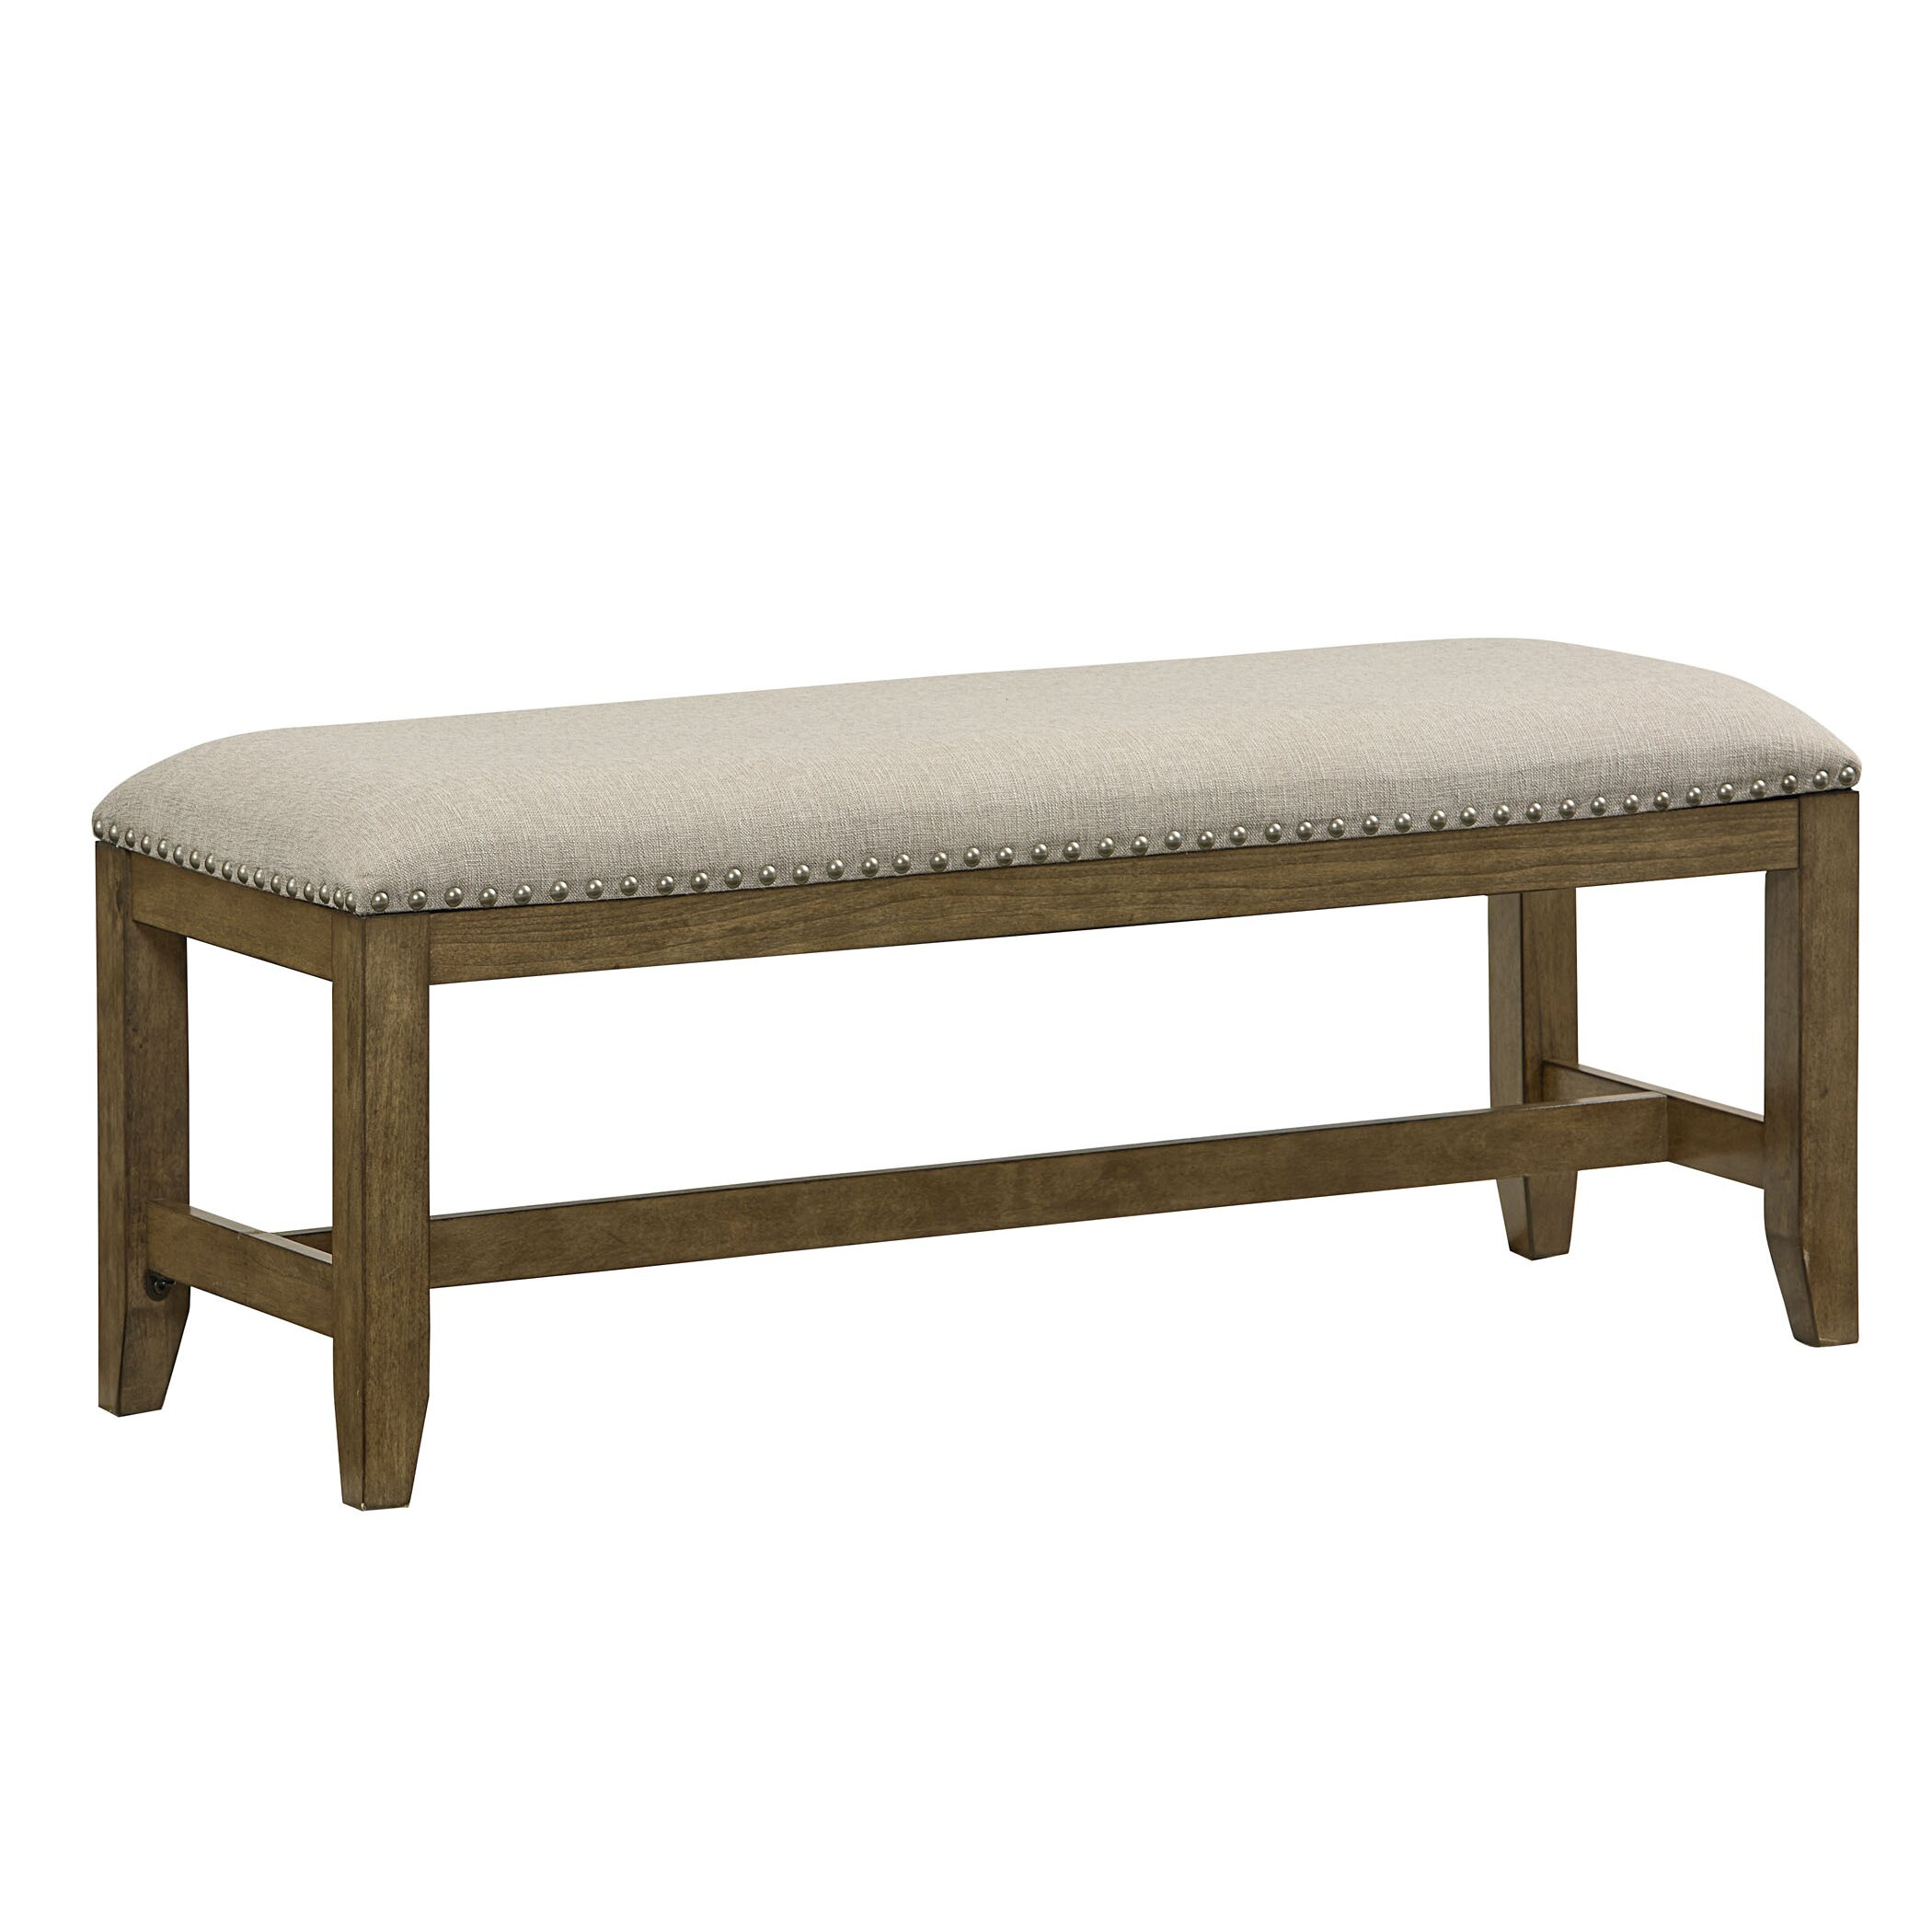 Laurel Foundry Modern Farmhouse Aubrie Upholstered Kitchen Bench Reviews